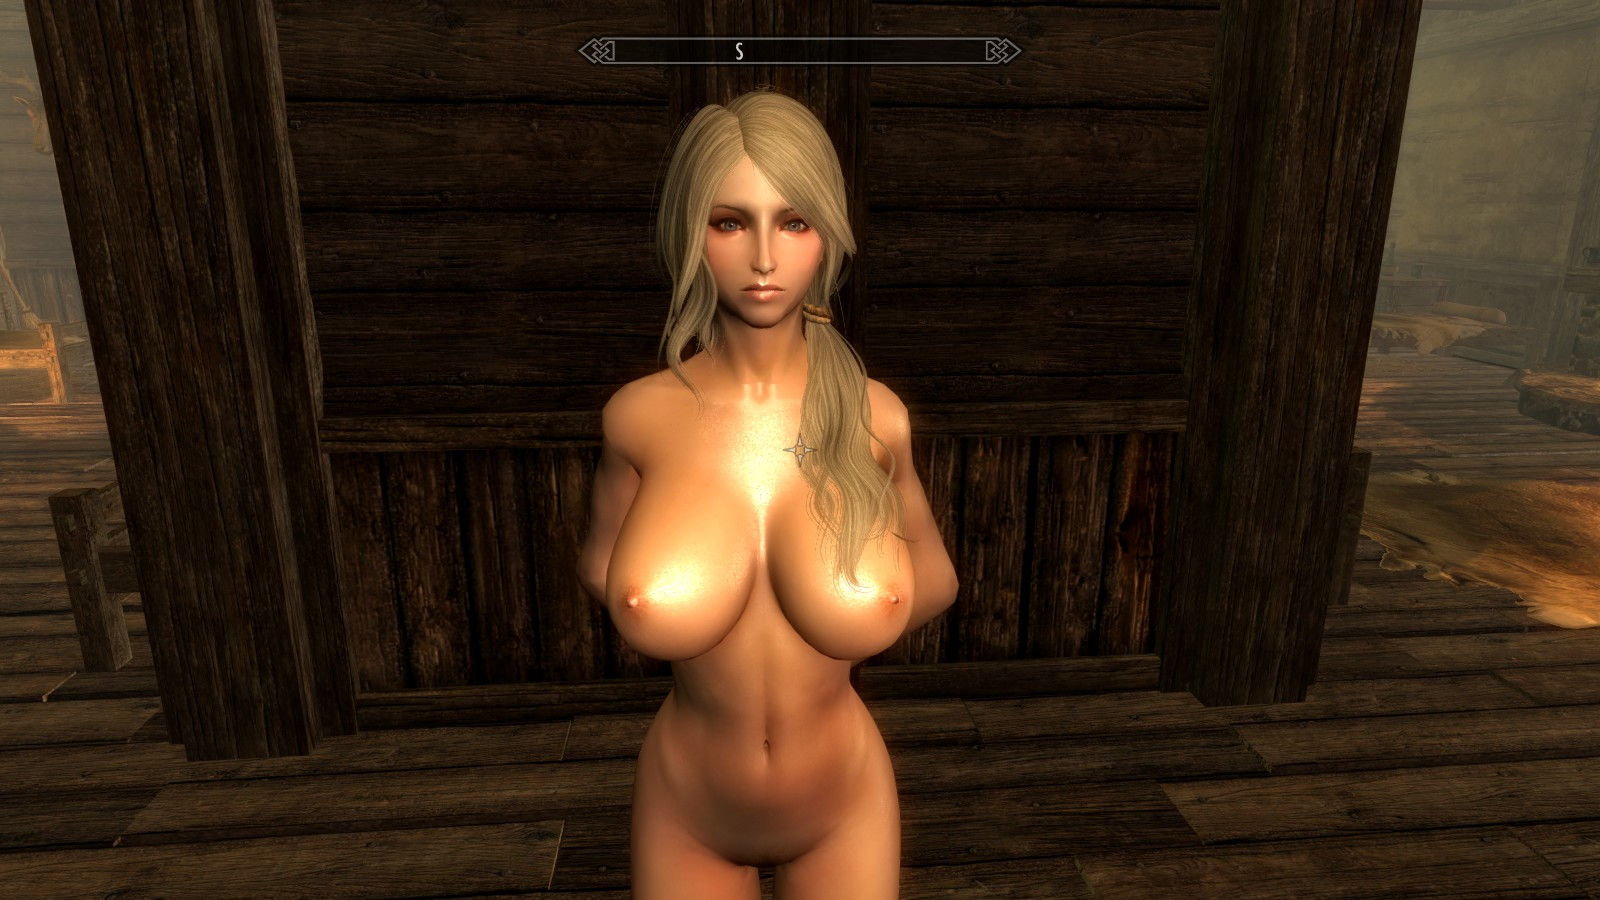 Skyrim succubus boobs cartoon pic